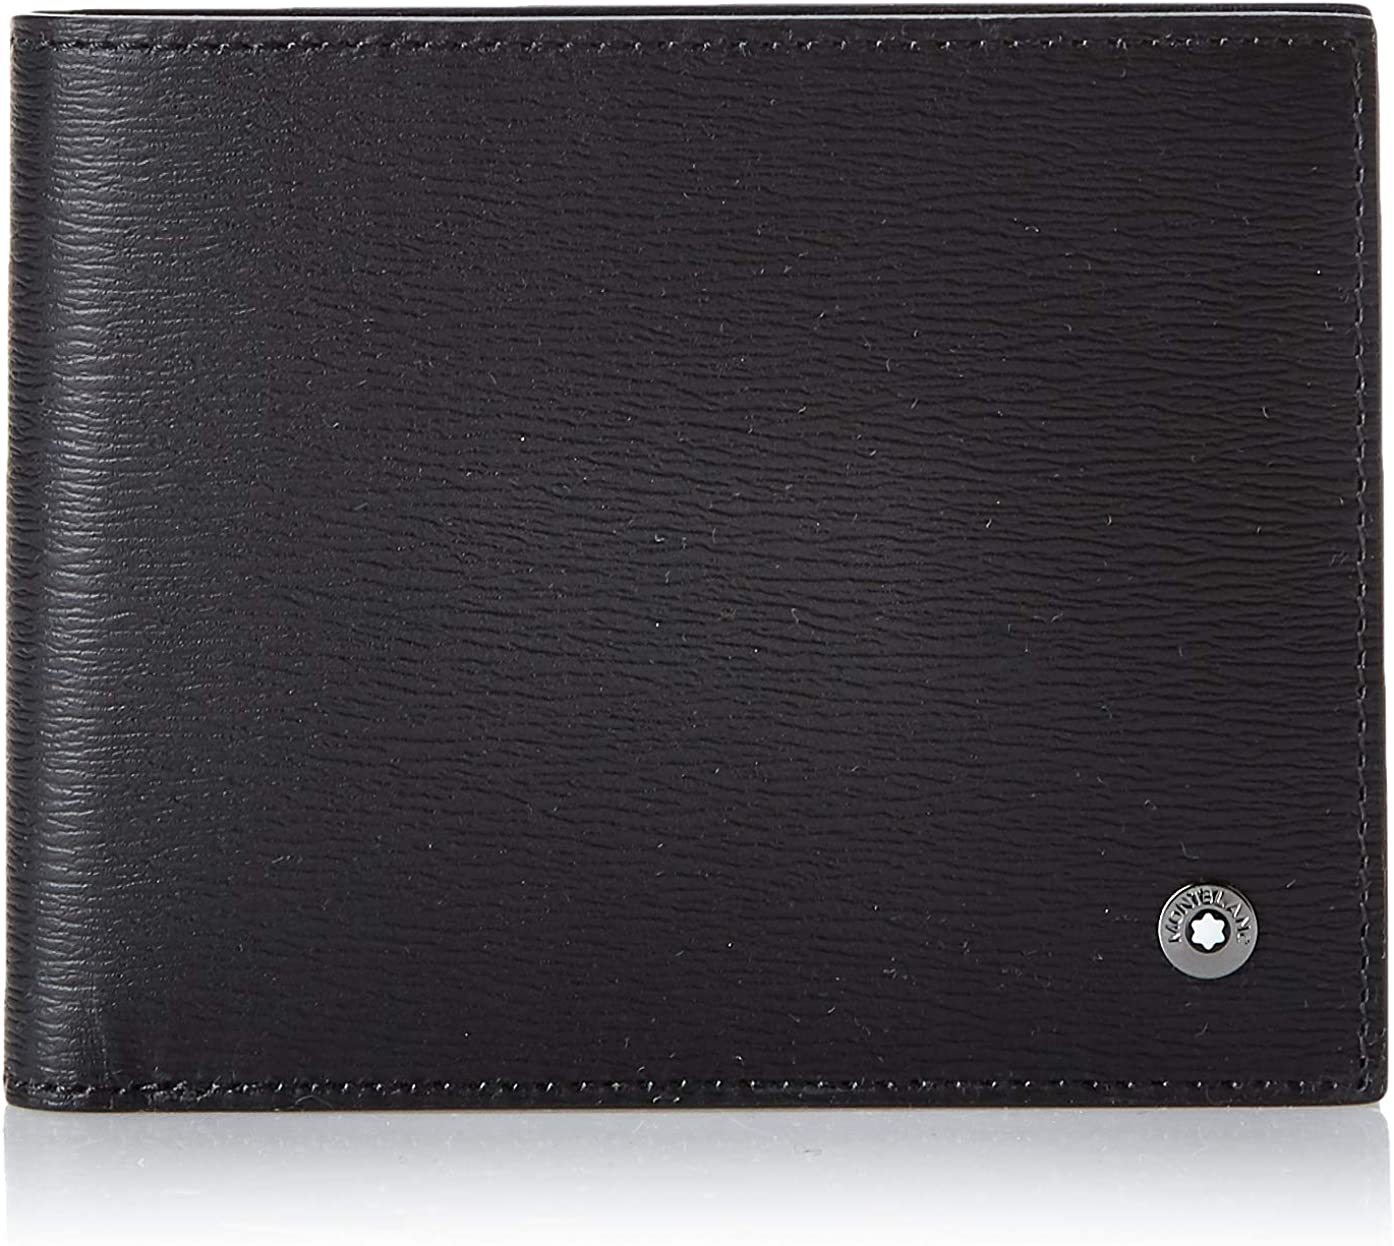 Montblanc 4810 Westside Men's Small Leather Wallet 6CC 114686